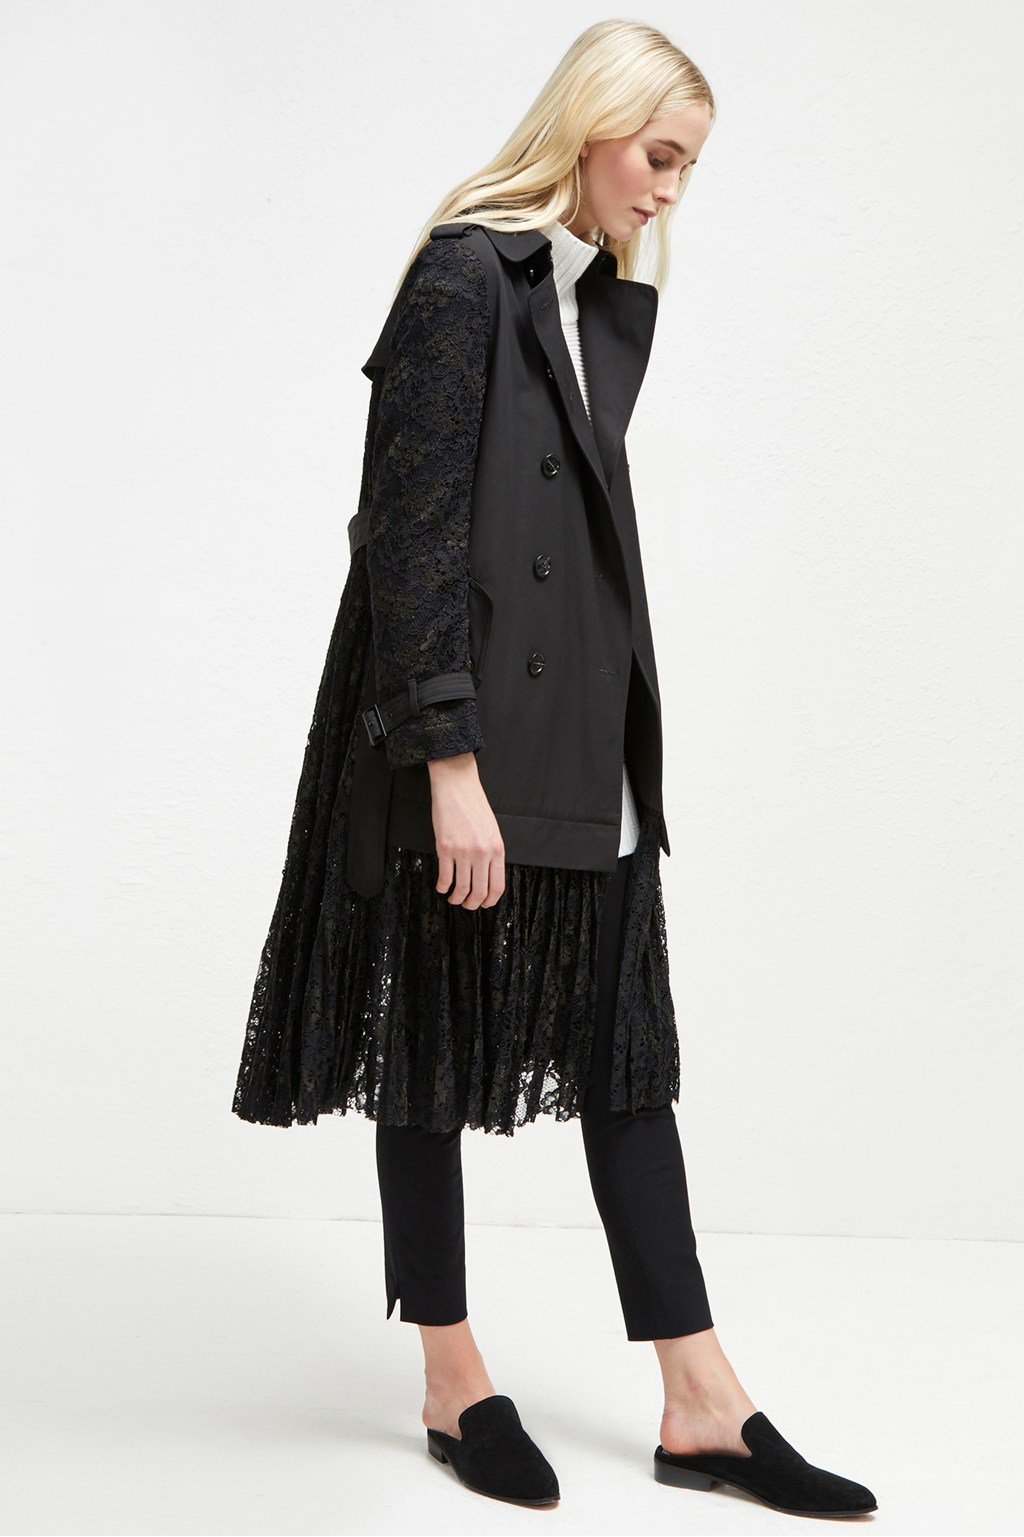 I'm in love with this lace trench from french connection that is on sale for $140